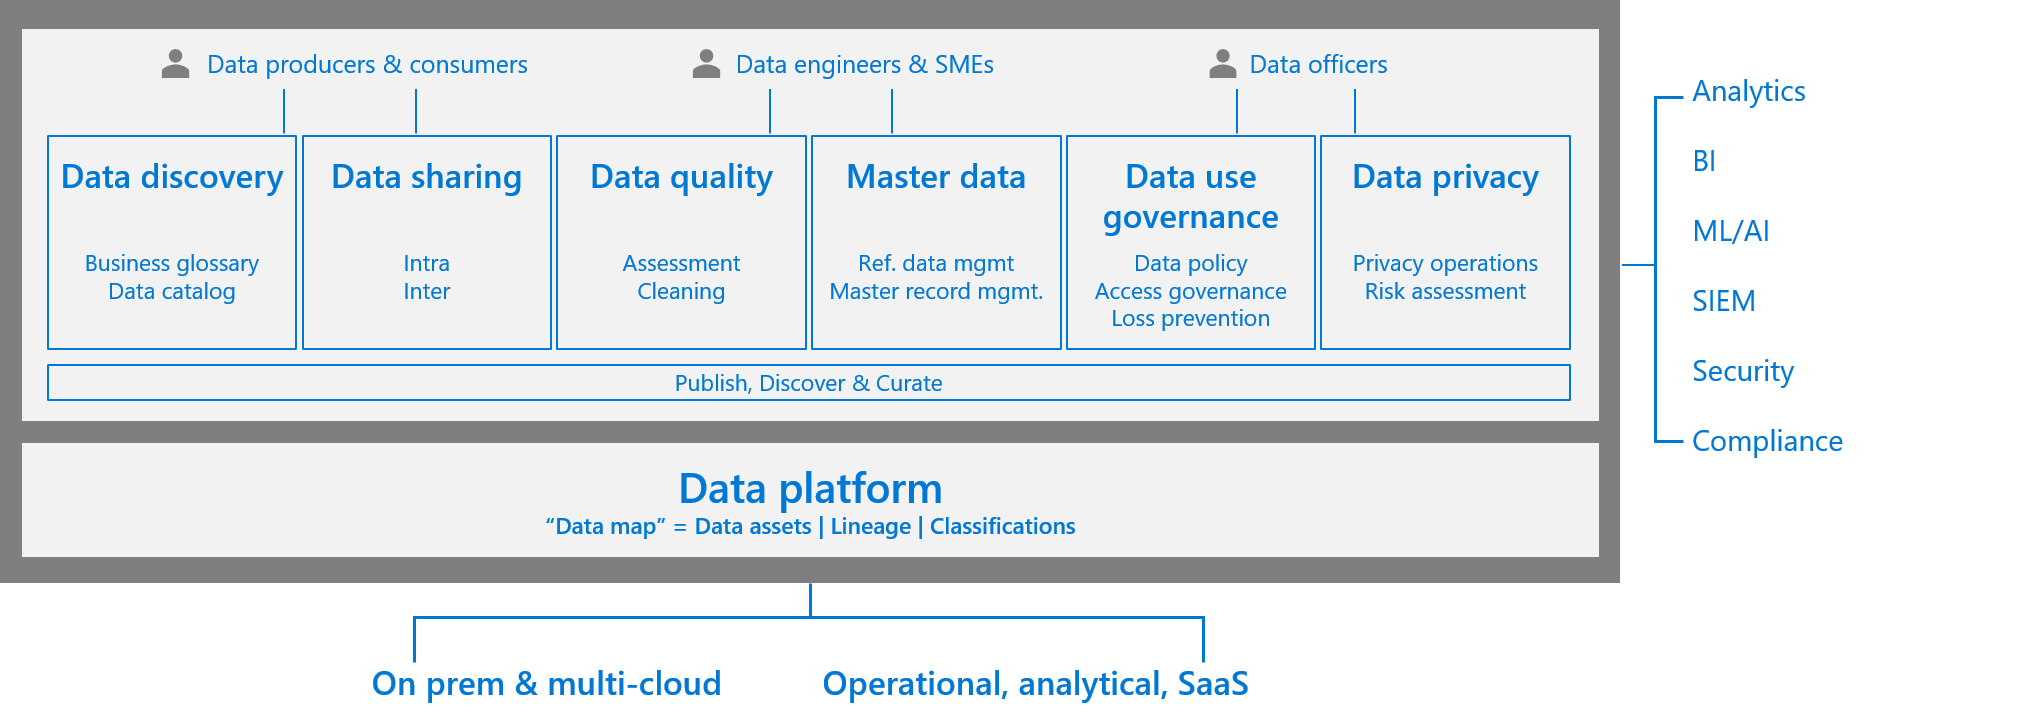 Figure1:End-to-end unified data governancestrategy